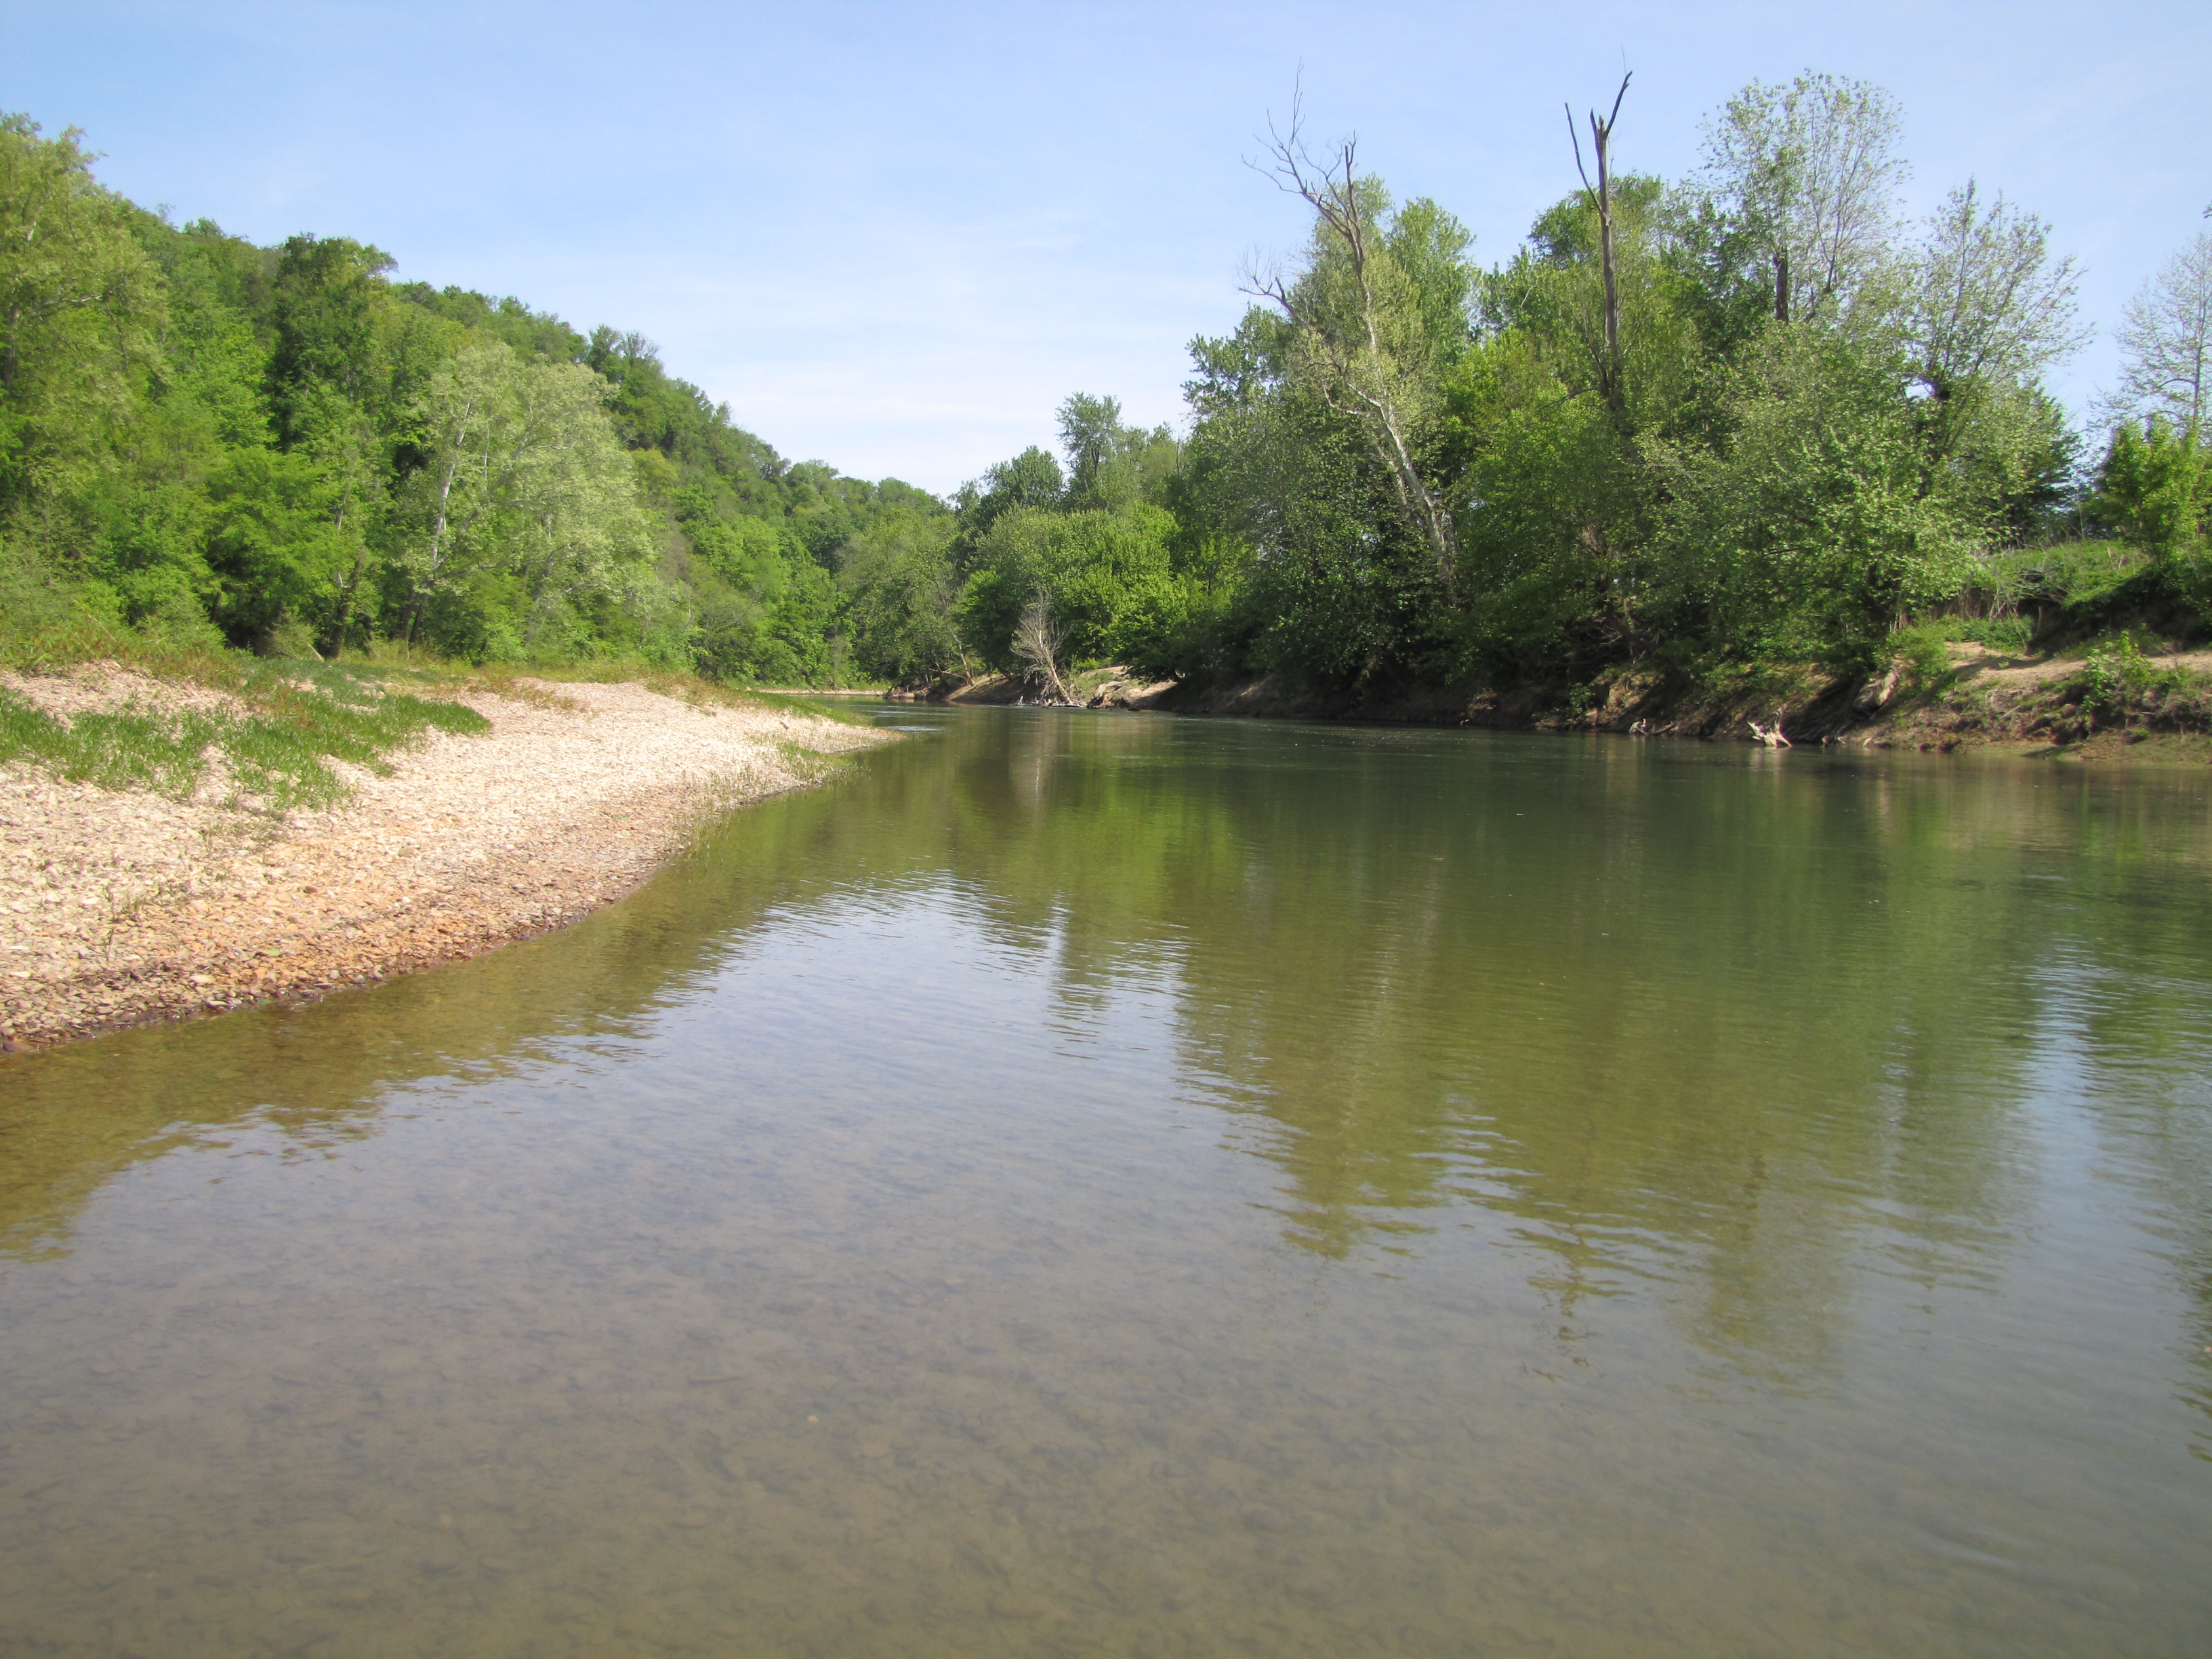 Green River, near Munfordville, KY, offers anglers and boaters a variety of deep pools, shallow riffles, cold springs and spectacular views not to mention an excellent fisheries.